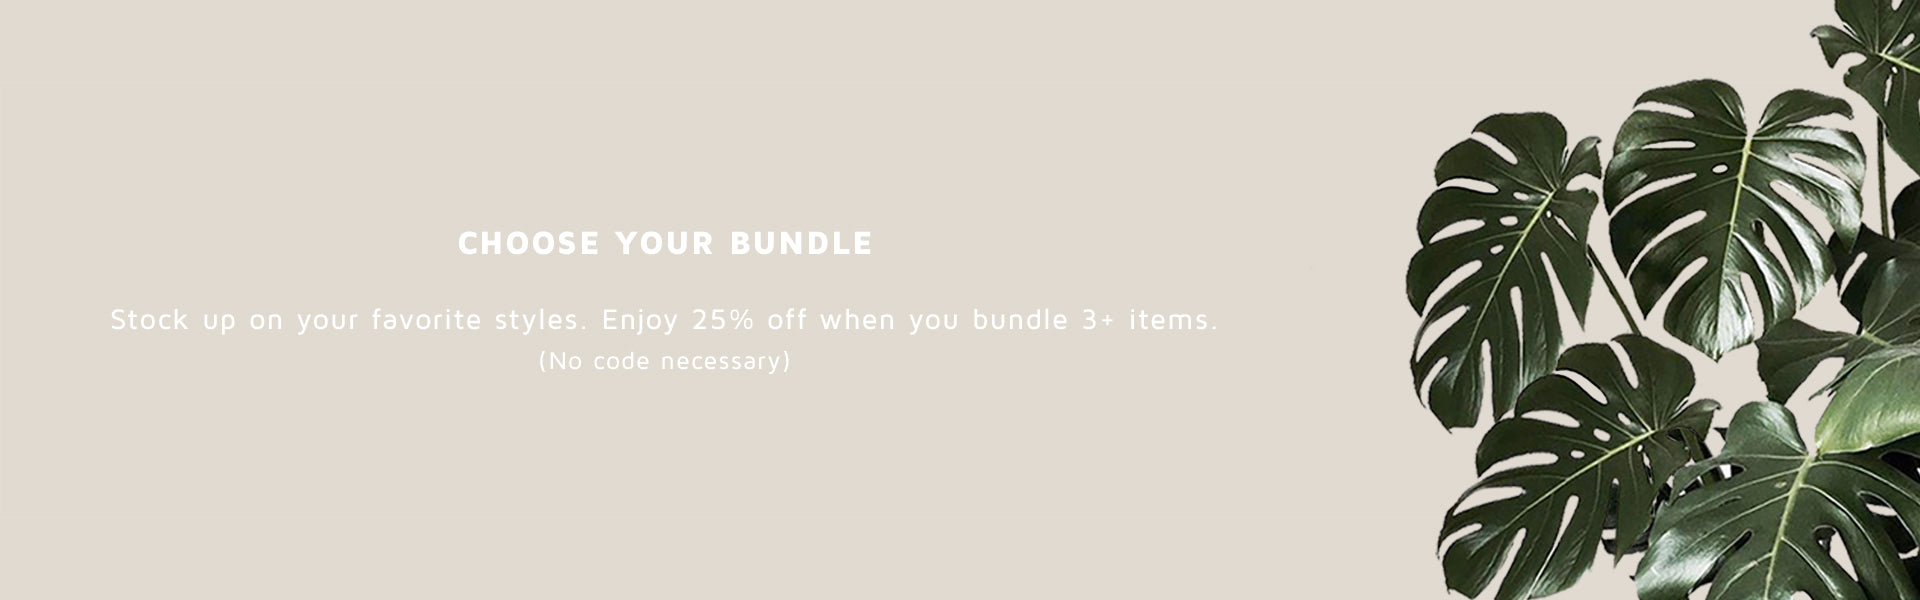 337 BRAND Women's Sustainable Clothing Bundles